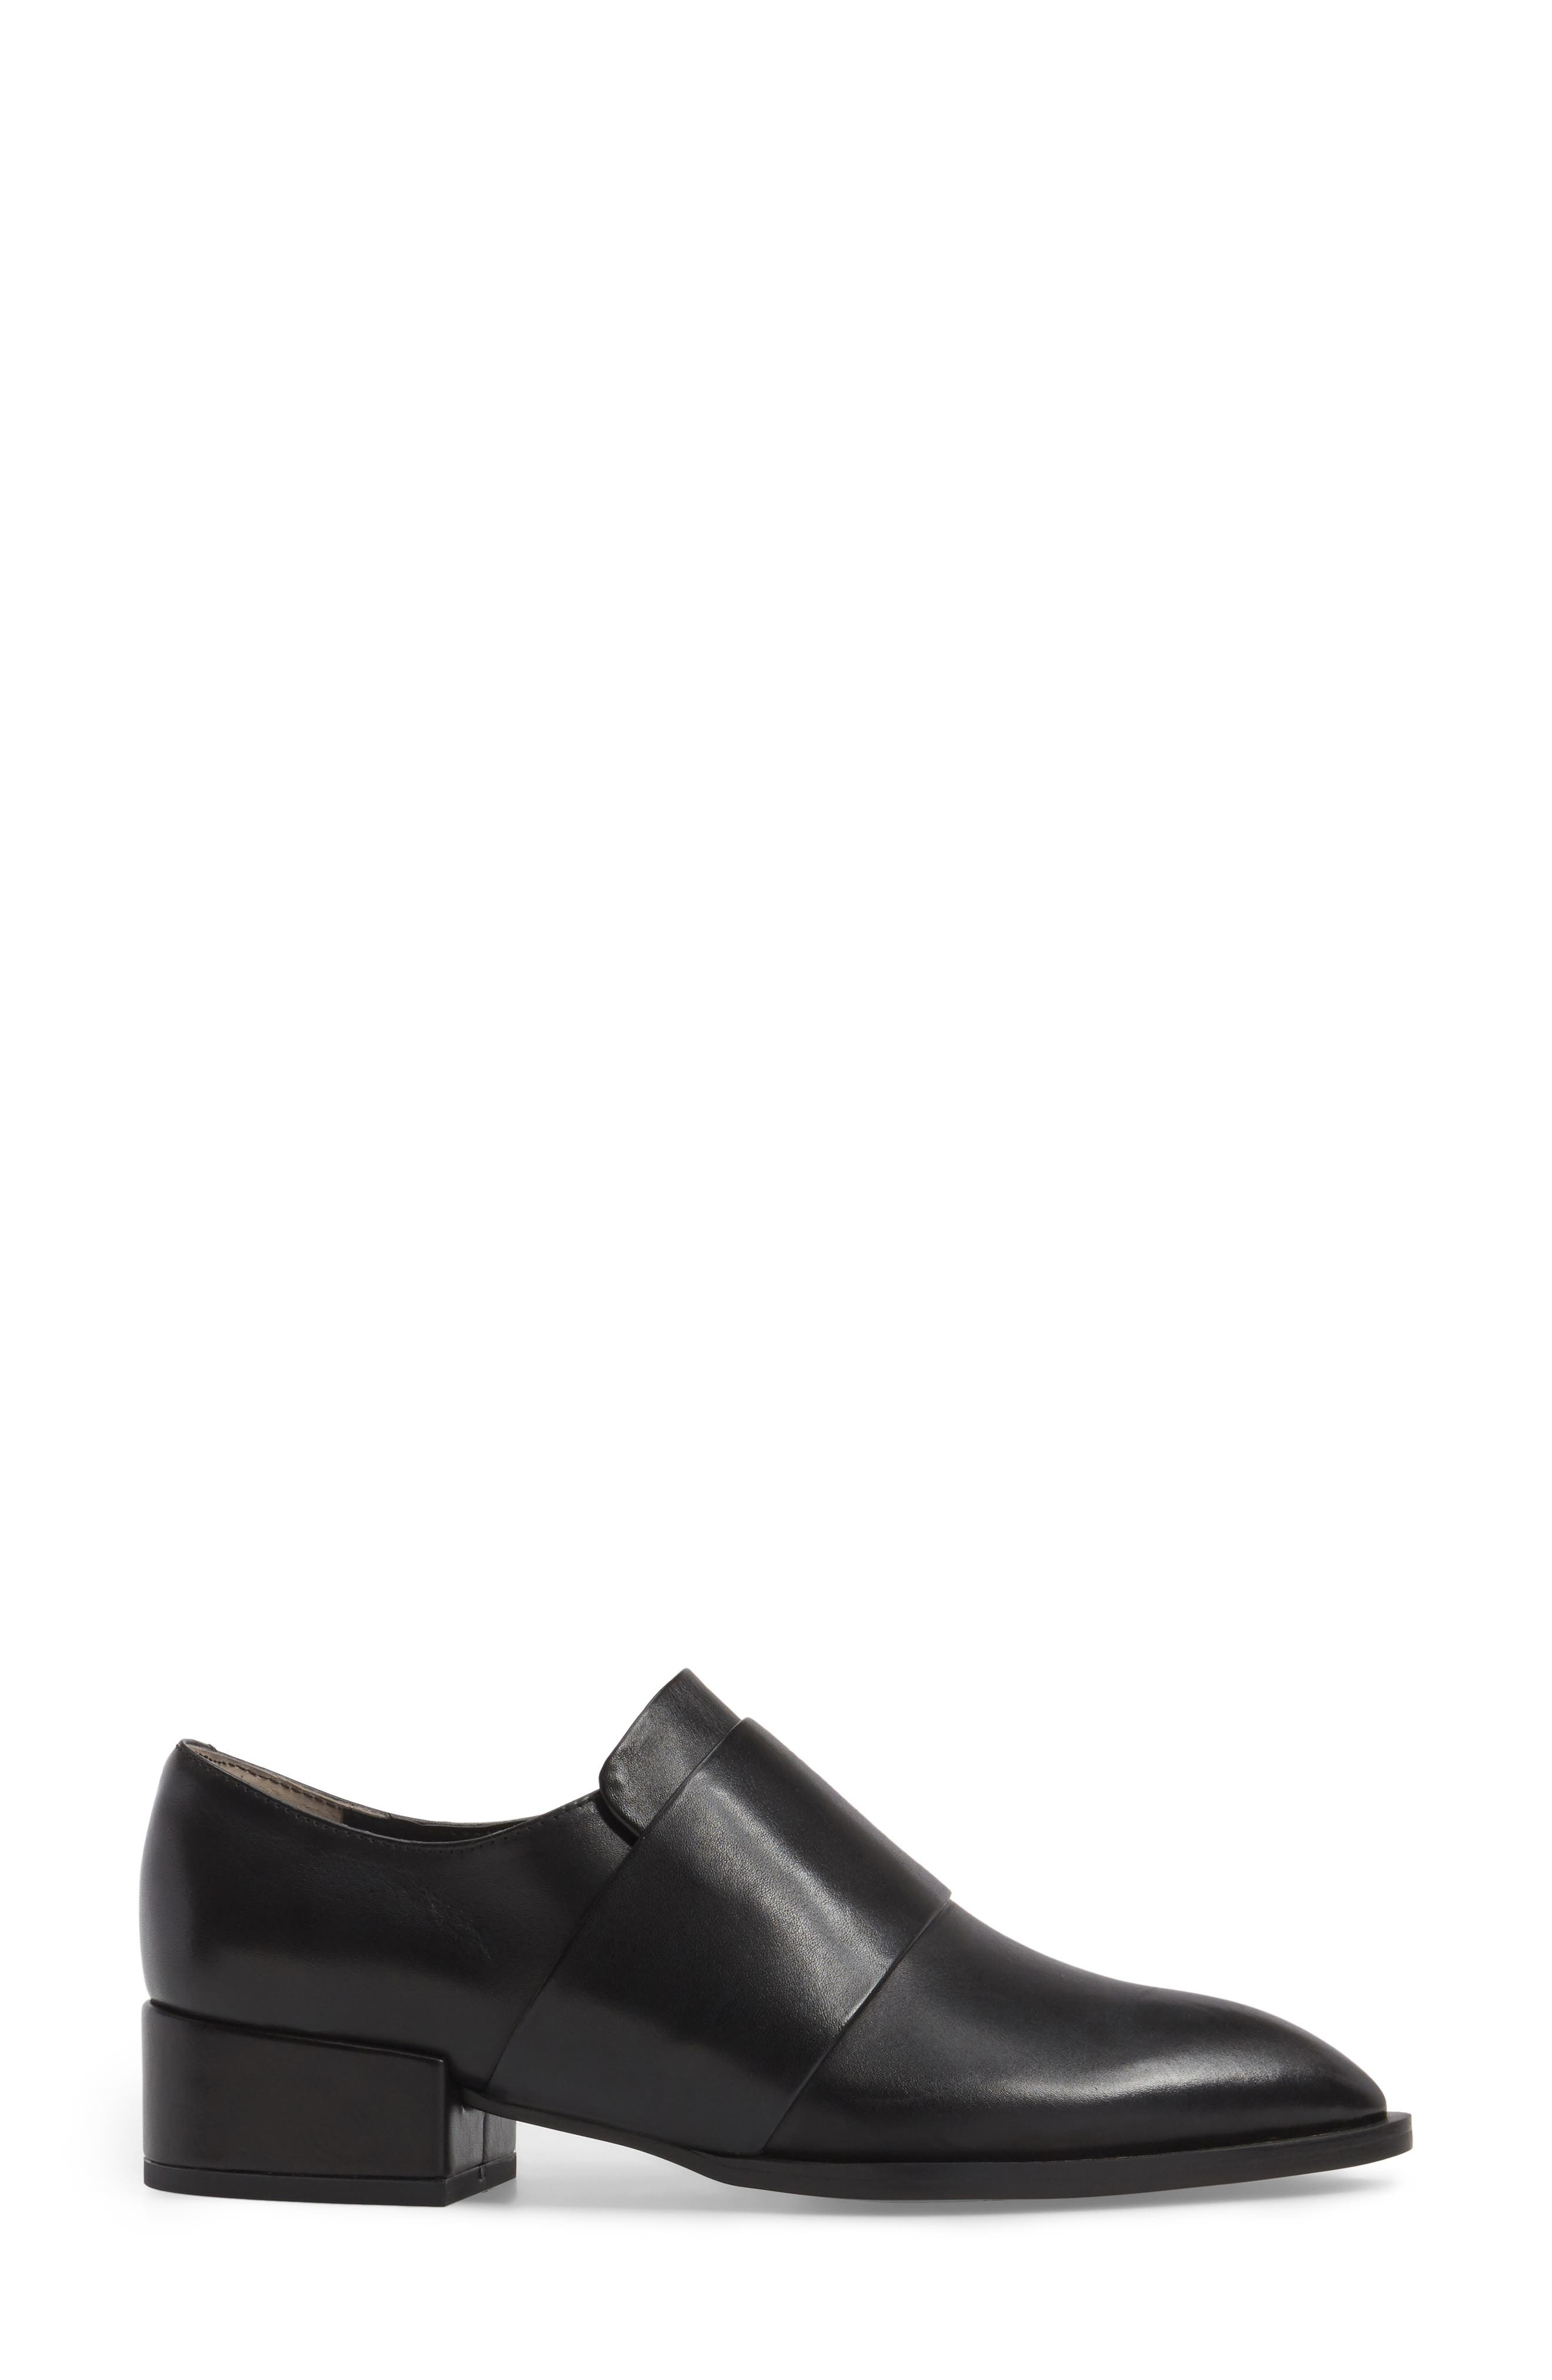 Dilla Loafer,                             Alternate thumbnail 3, color,                             Black Calais Leather